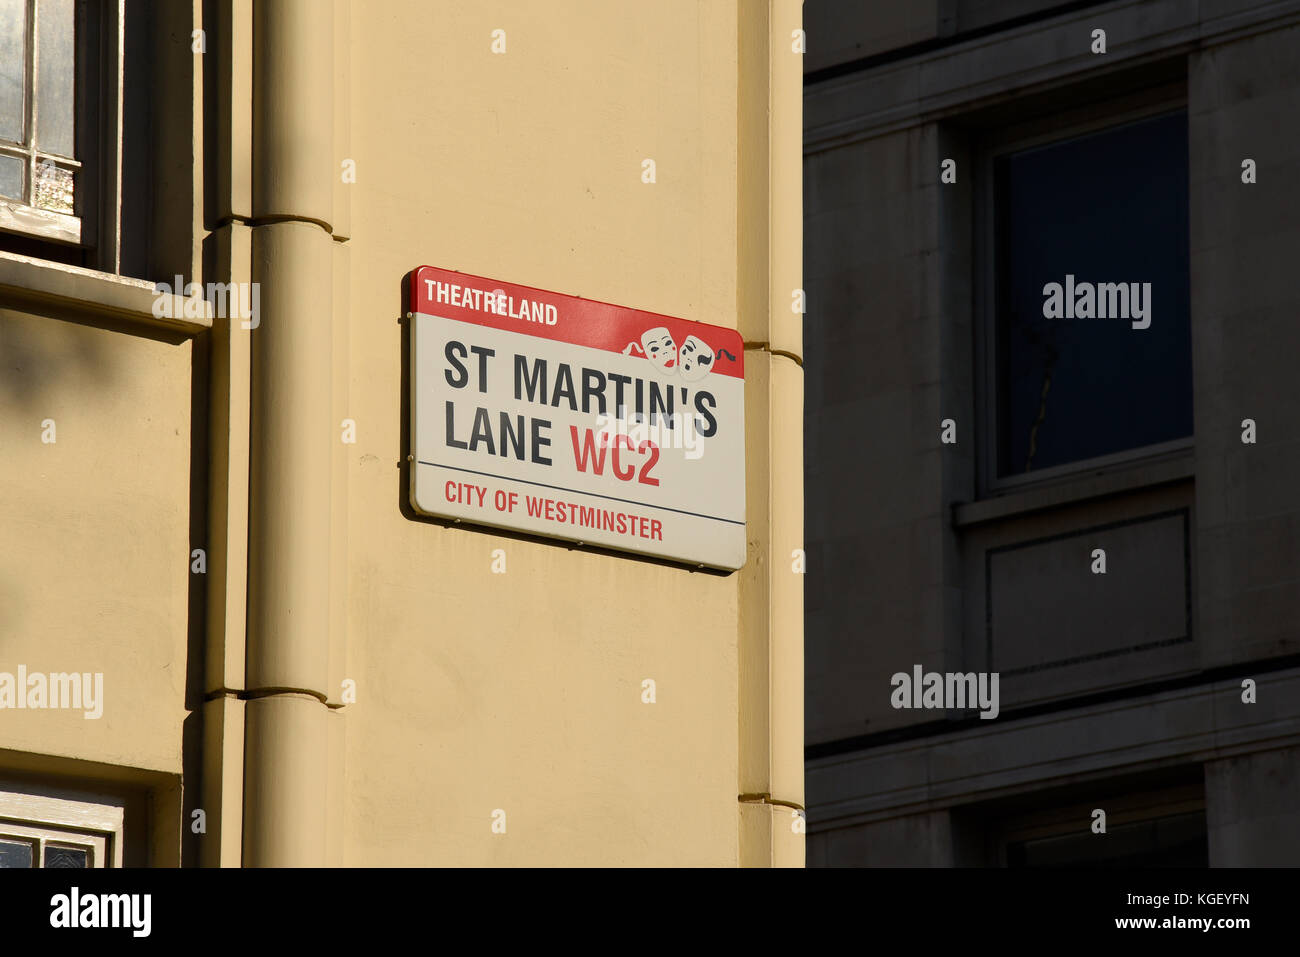 St Martin's Lane, City of Westminster, London, road street sign. Theatreland. West End. Space for copy - Stock Image